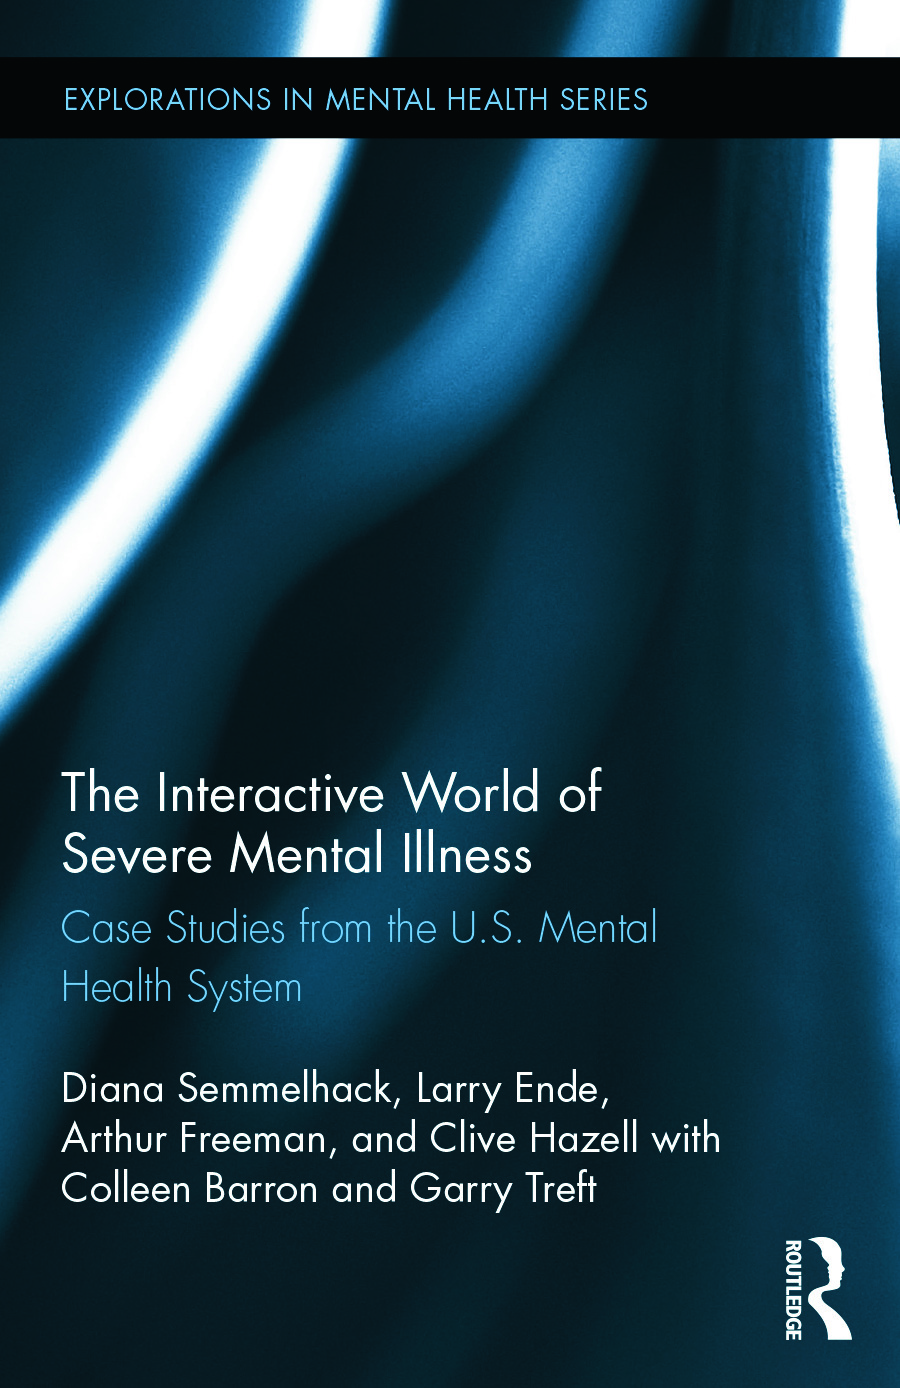 The Interactive World of Severe Mental Illness: Case Studies of the U.S. Mental Health System book cover